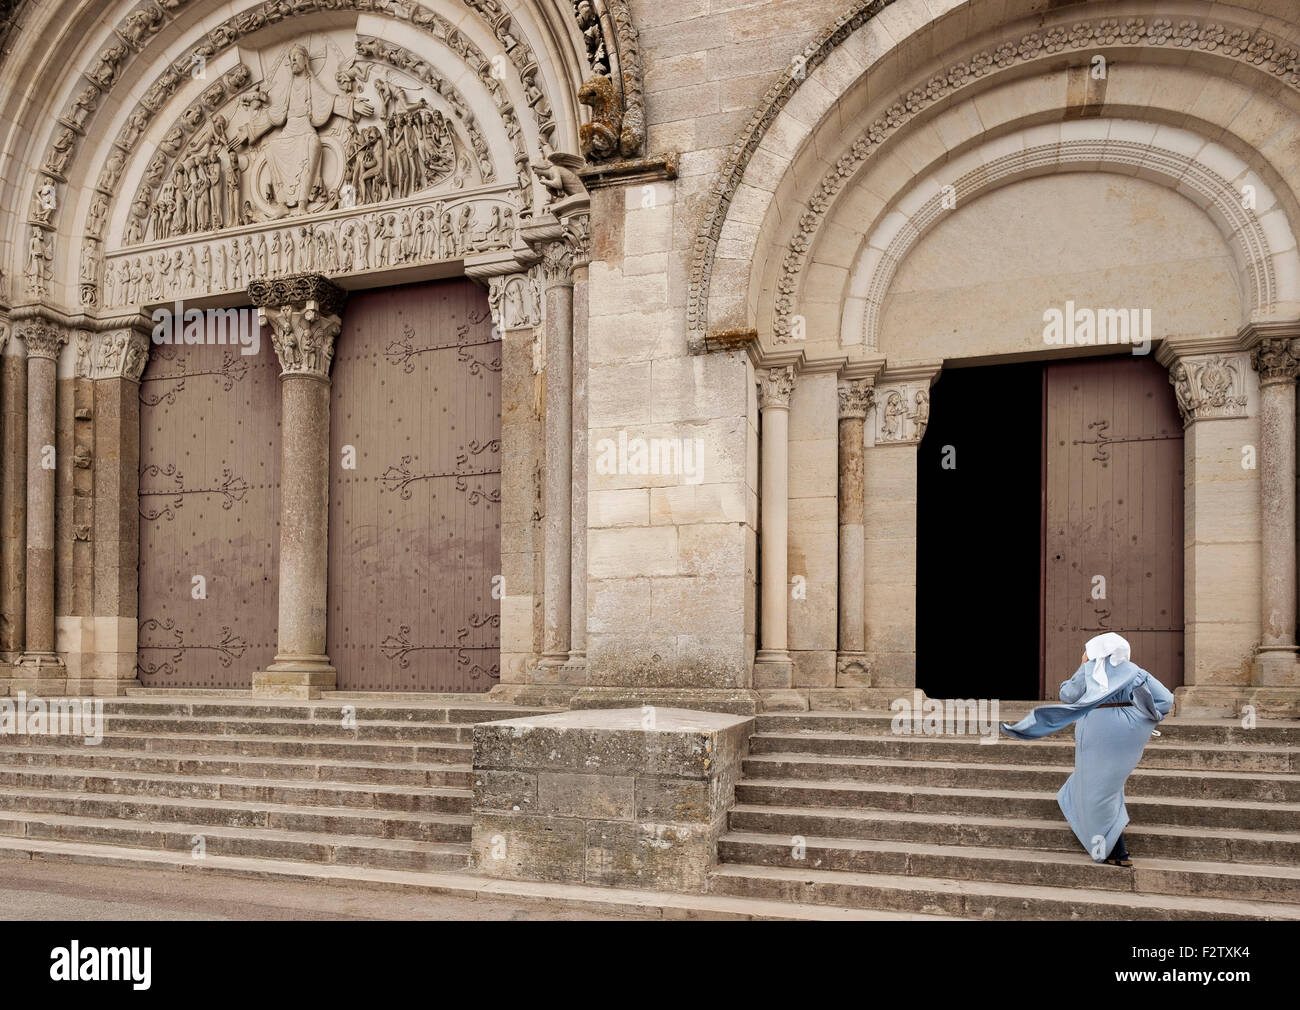 A nun holds her hood in the wind as she hurries up the steps of the Abbey of Vézelay, the Basilica of St Magdelene - Stock Image